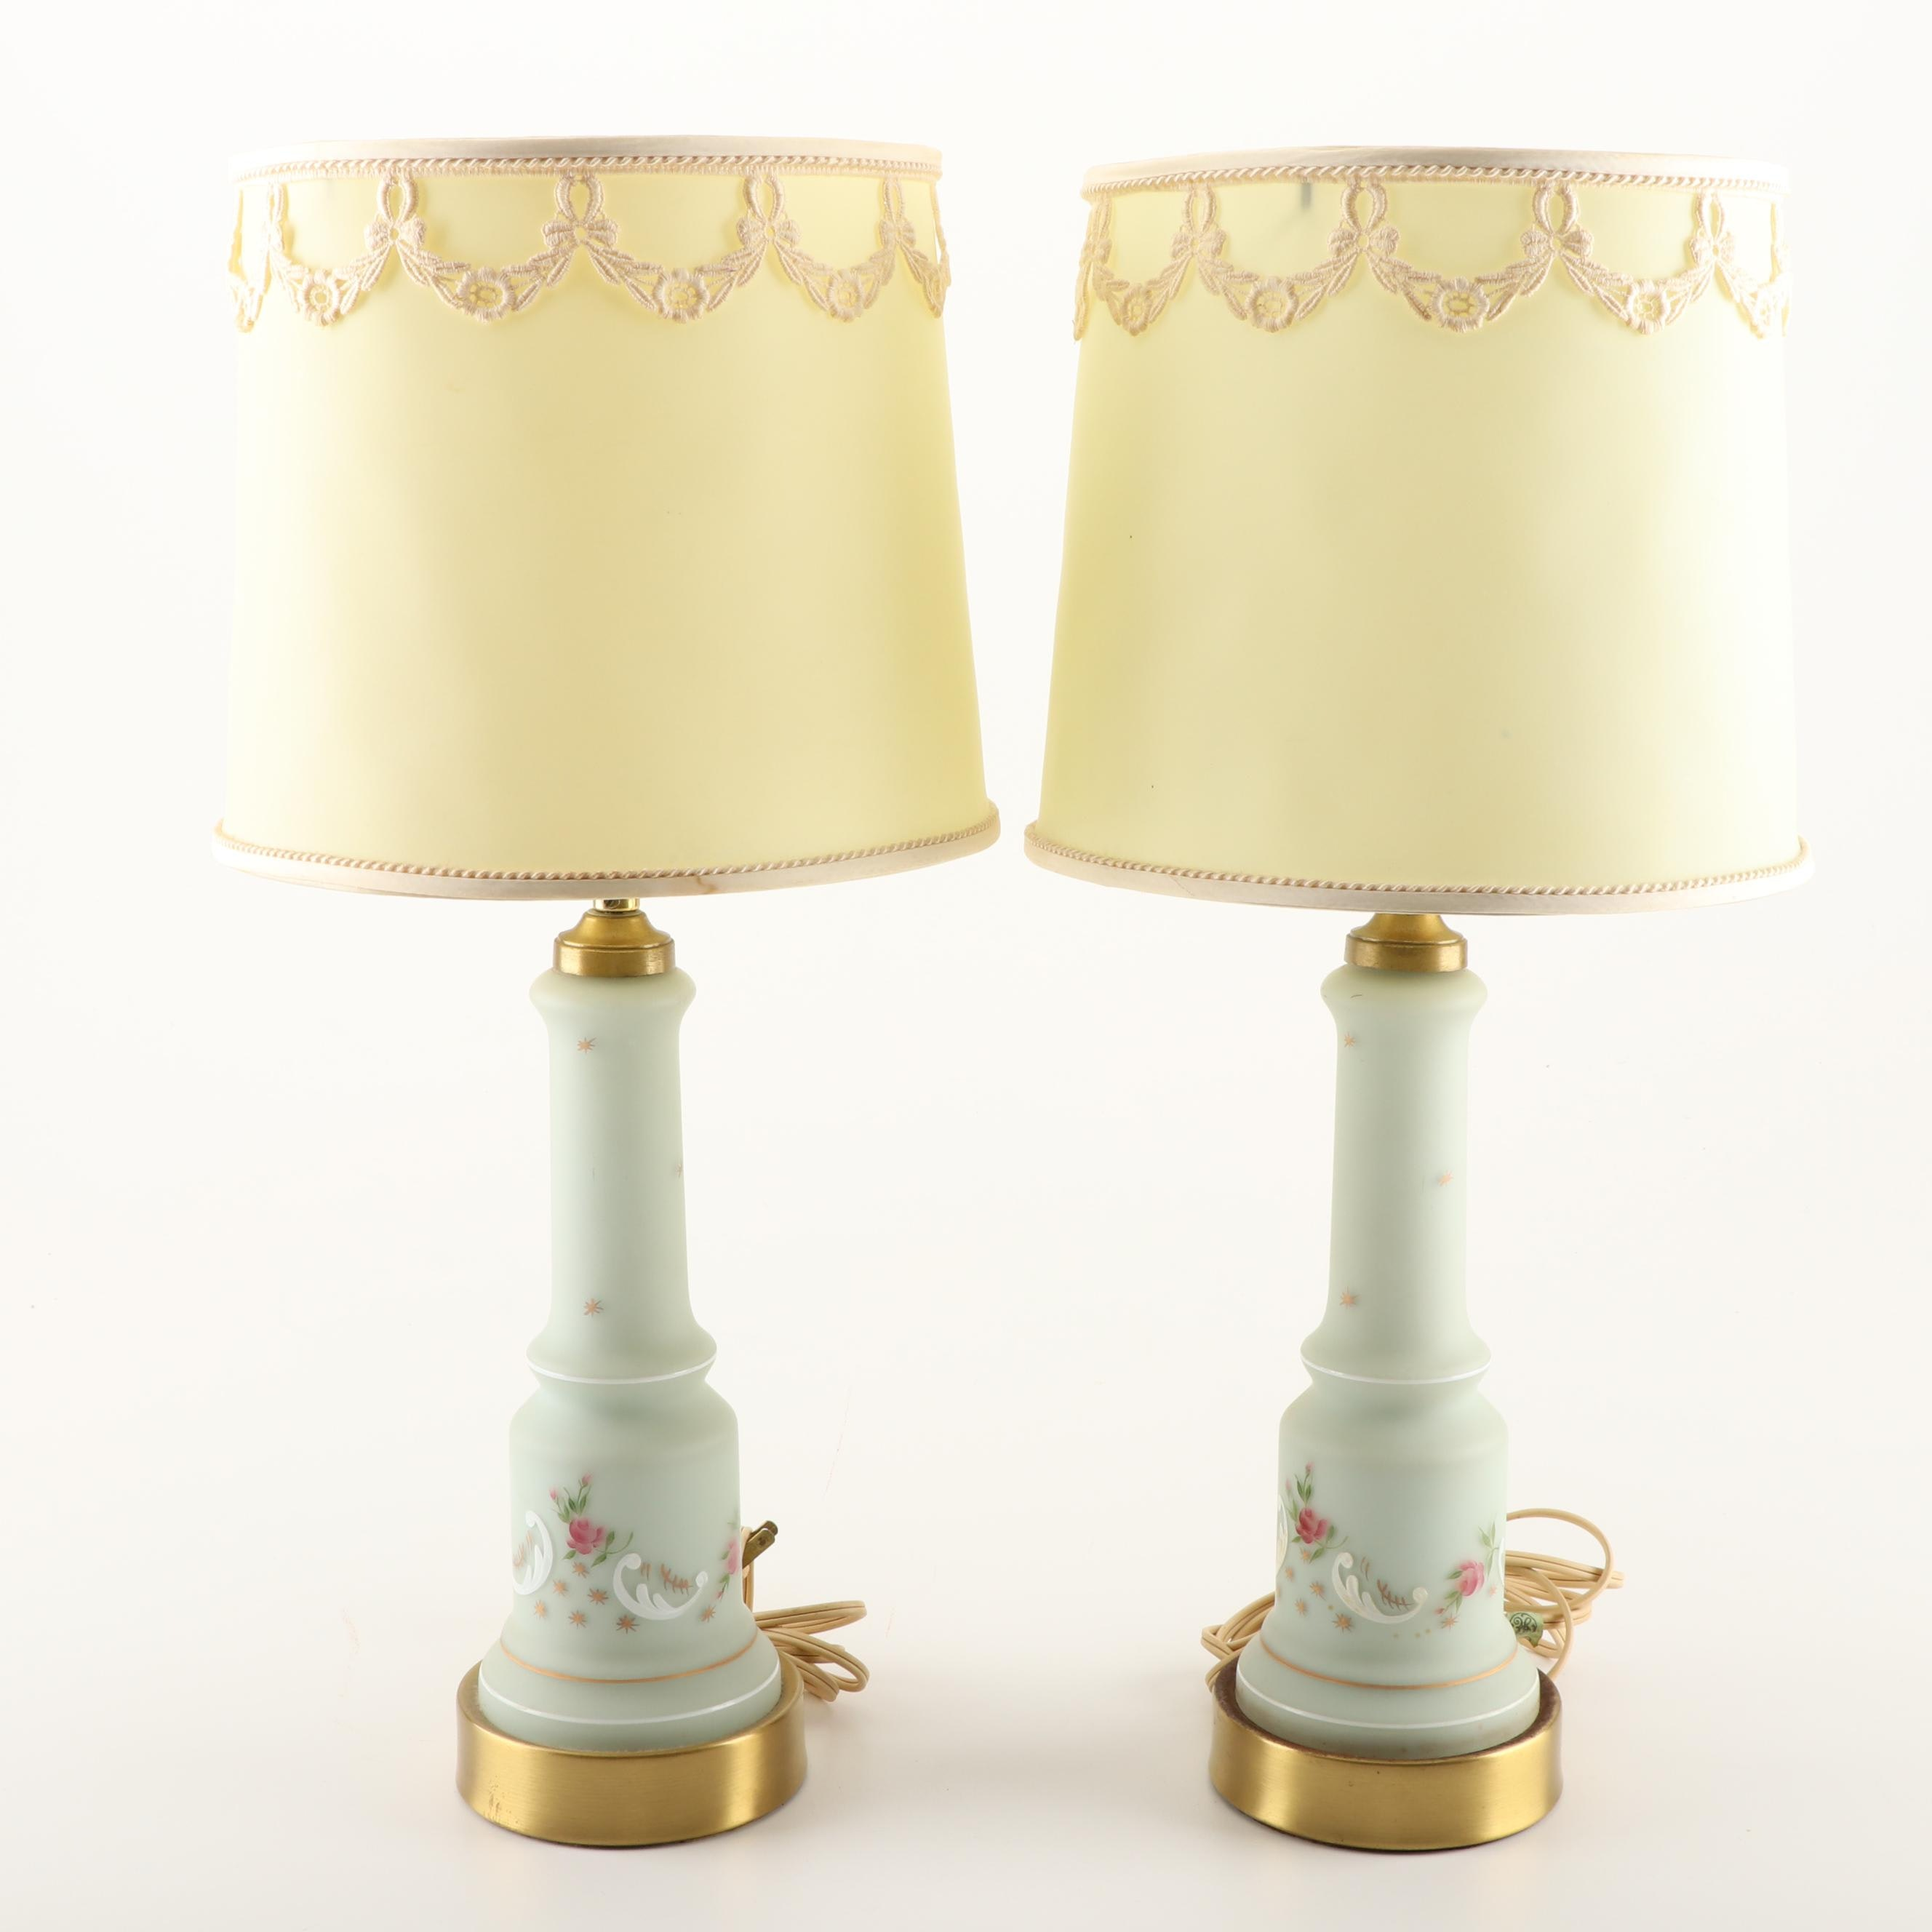 Hand-Painted Frosted Glass Table Lamps with Decorative Shades